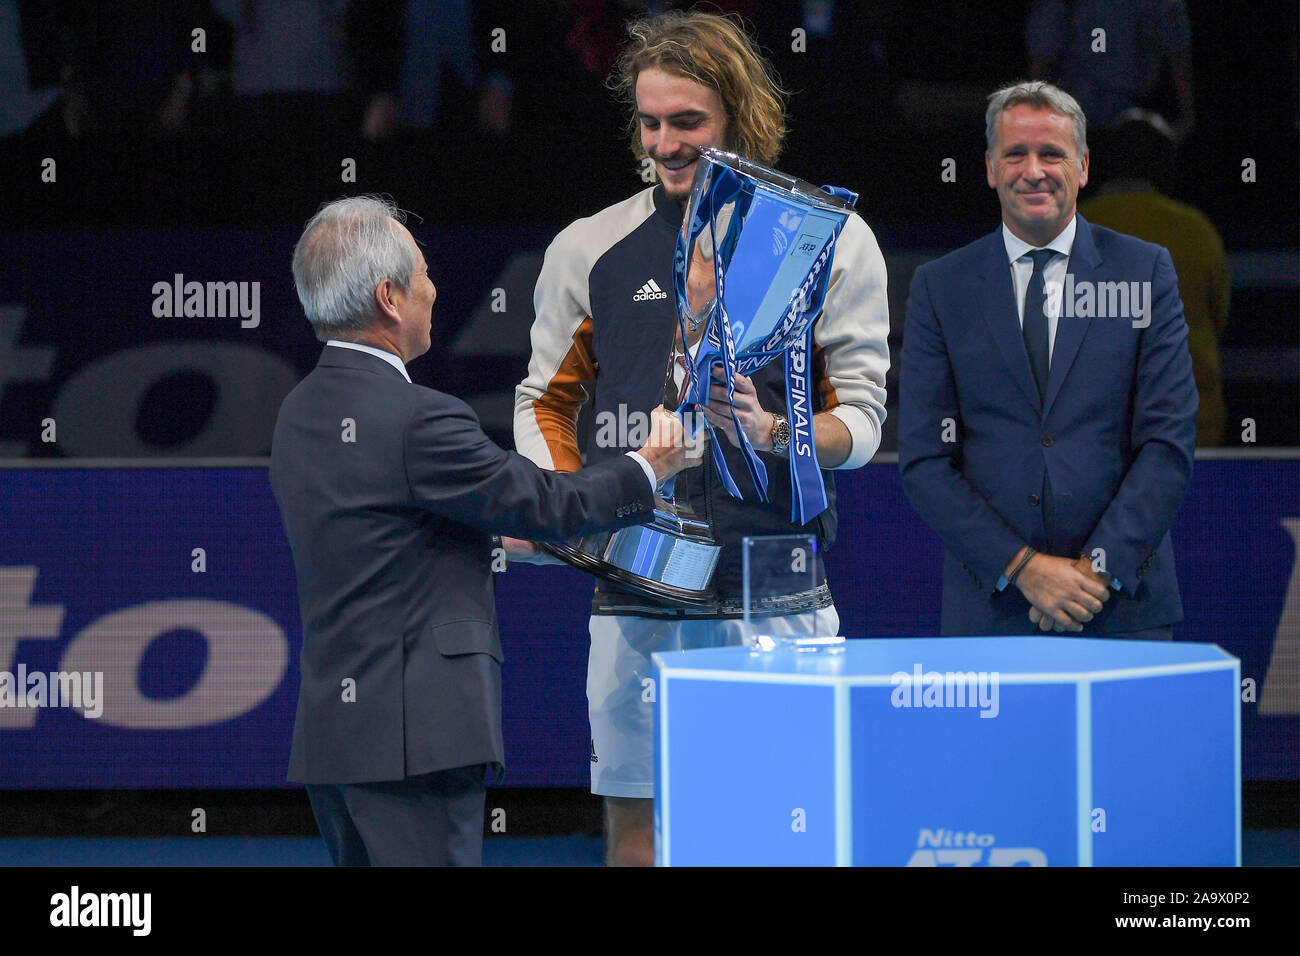 Page 2 Stefanos Tsitsipas High Resolution Stock Photography And Images Alamy